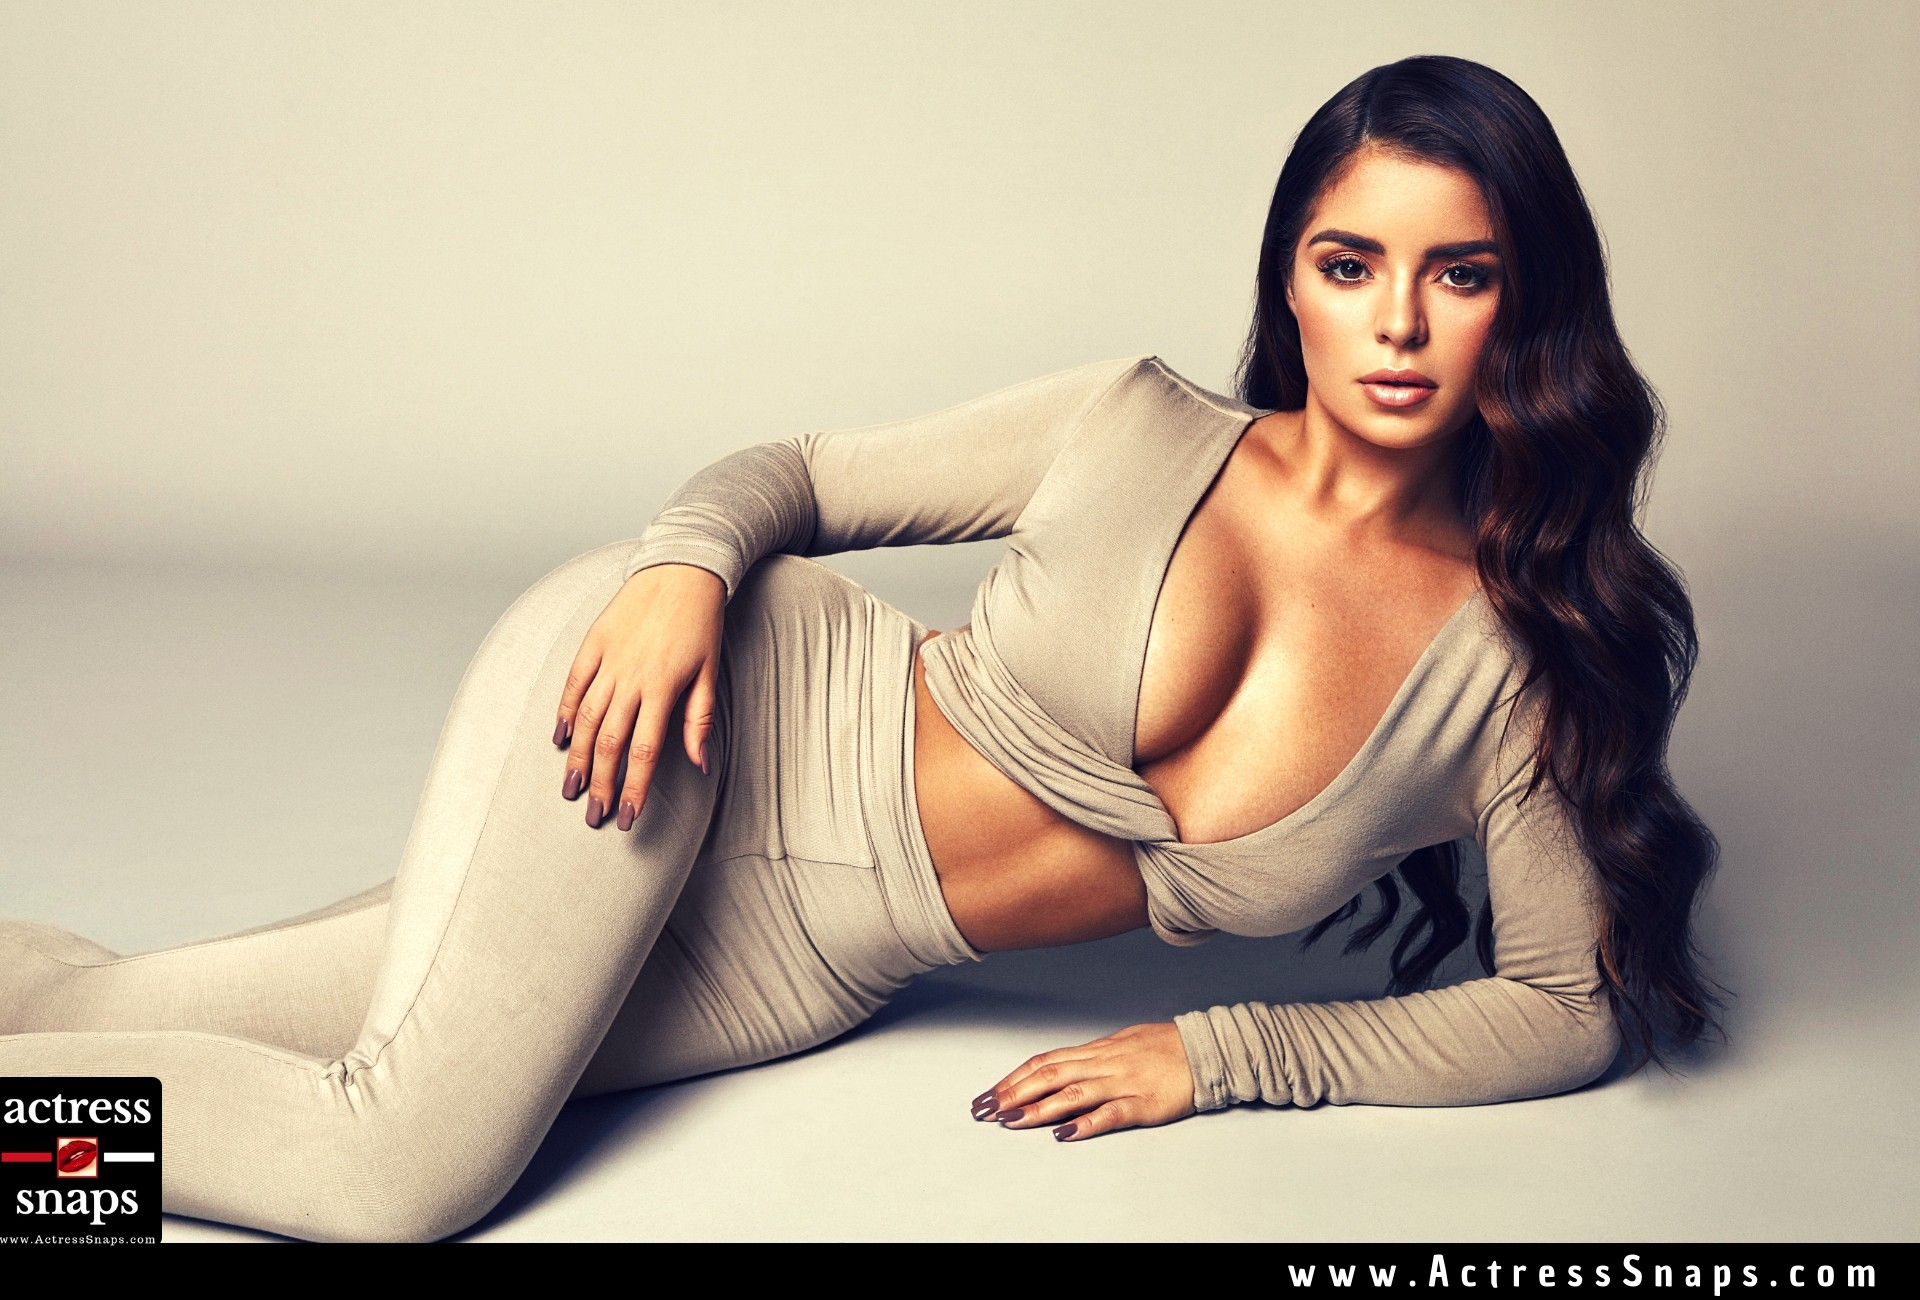 Demi Rose Mawby - Sharleen Collins Campaign 2018 - Sexy Actress Pictures | Hot Actress Pictures - ActressSnaps.com